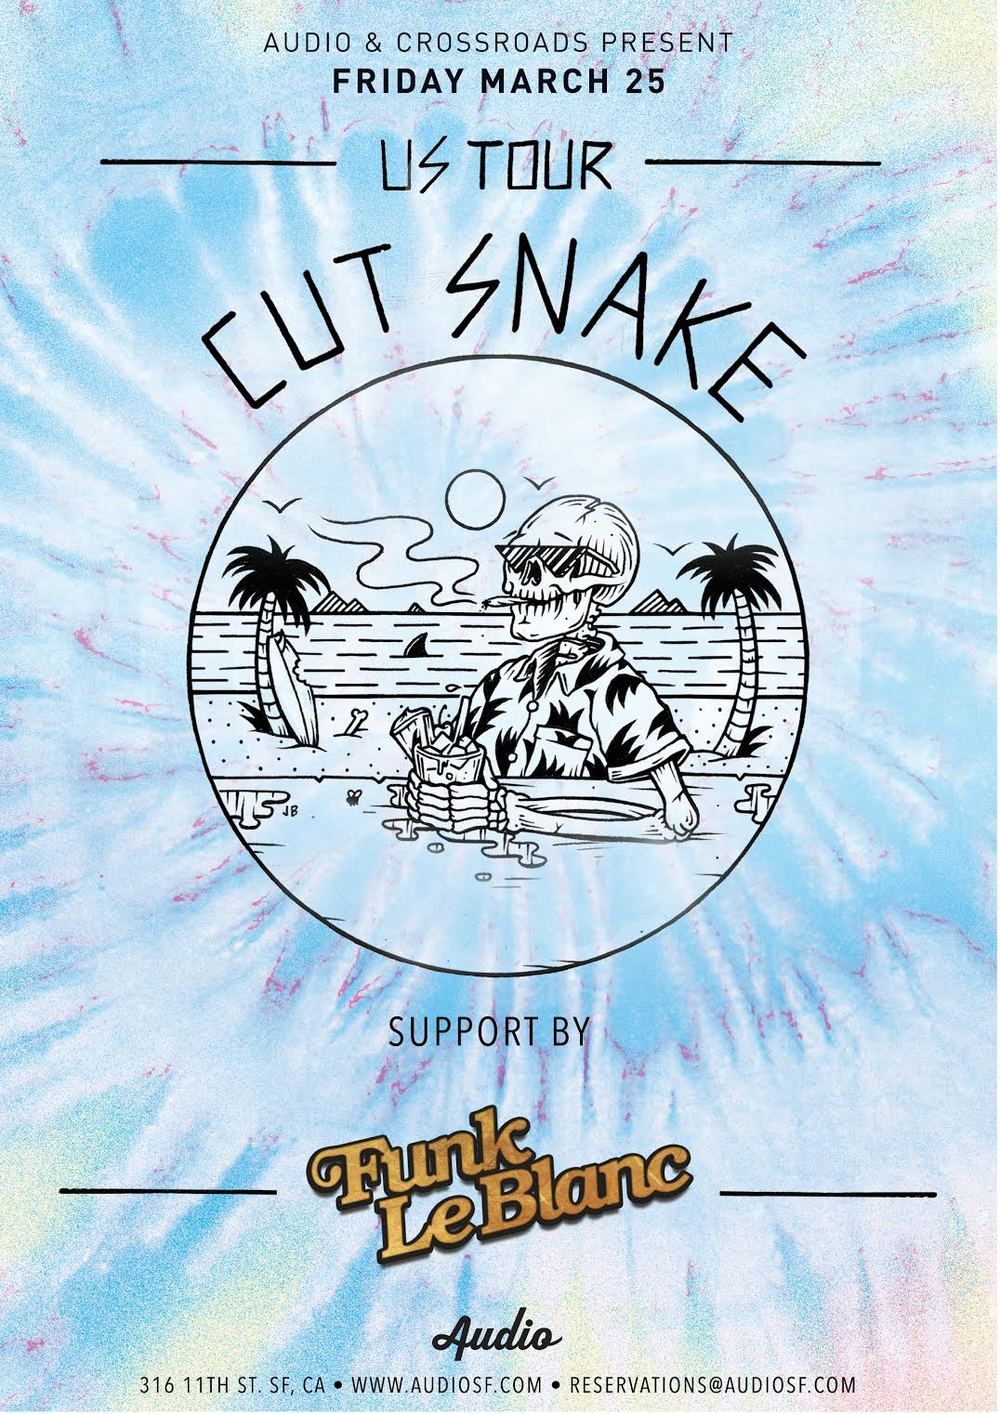 Cut Snake & Funk LeBlanc - March 25th